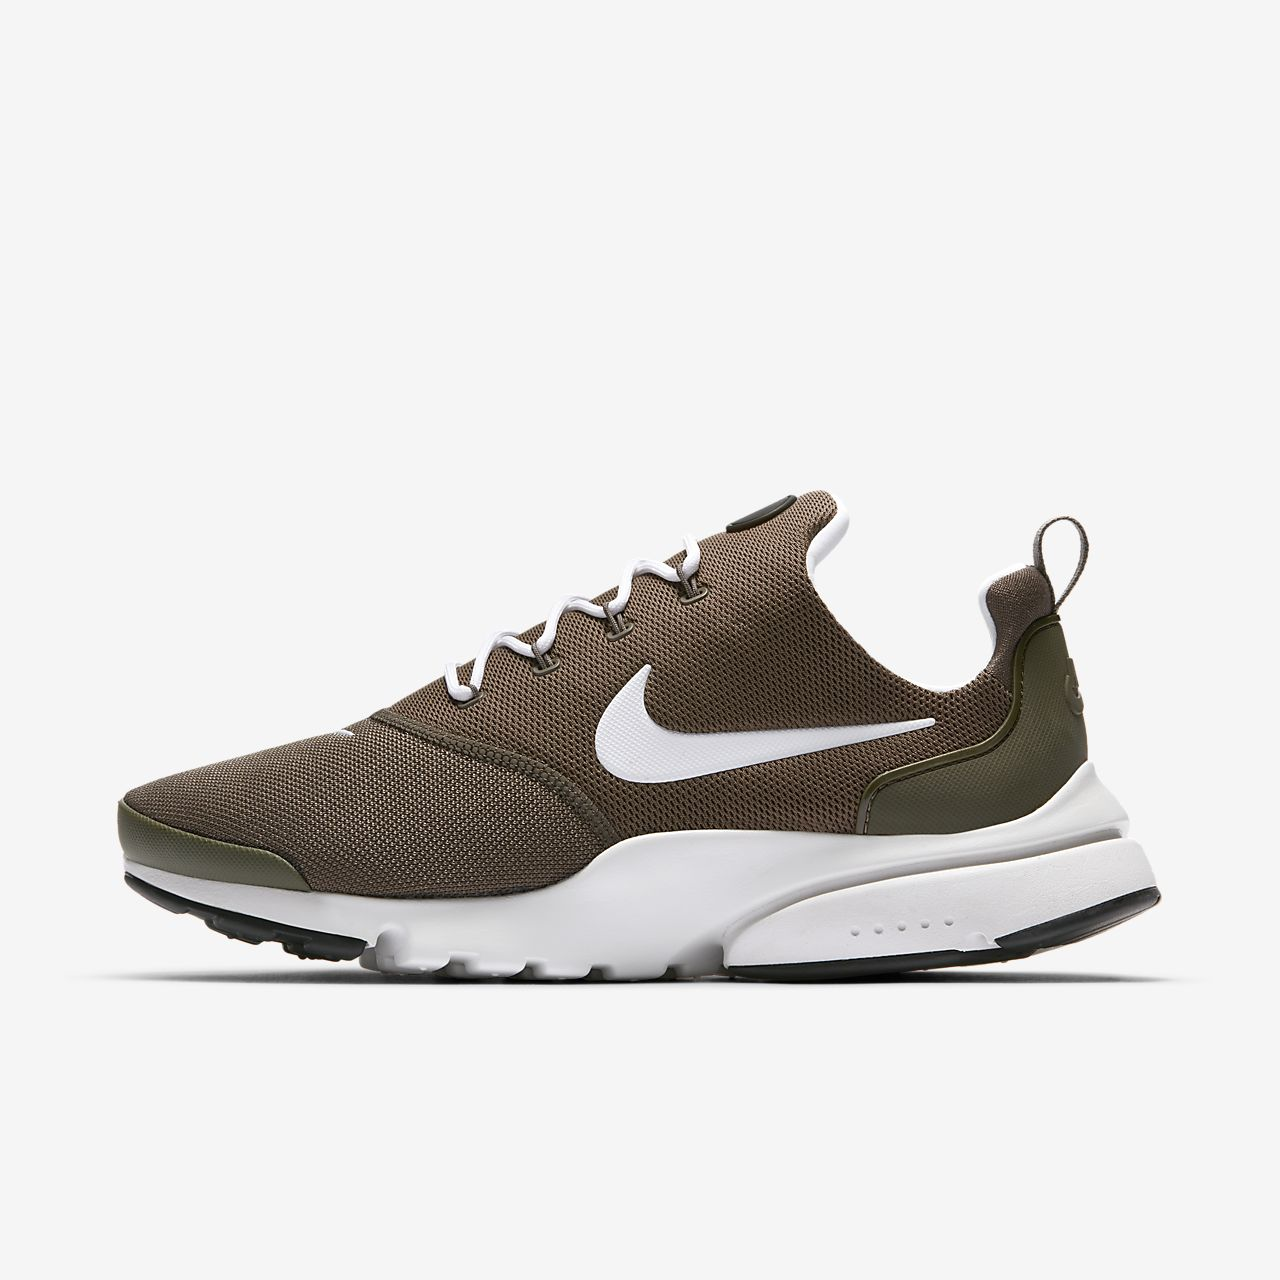 outlet store 59b2c 78e01 ... Chaussure Nike Presto Fly pour Homme